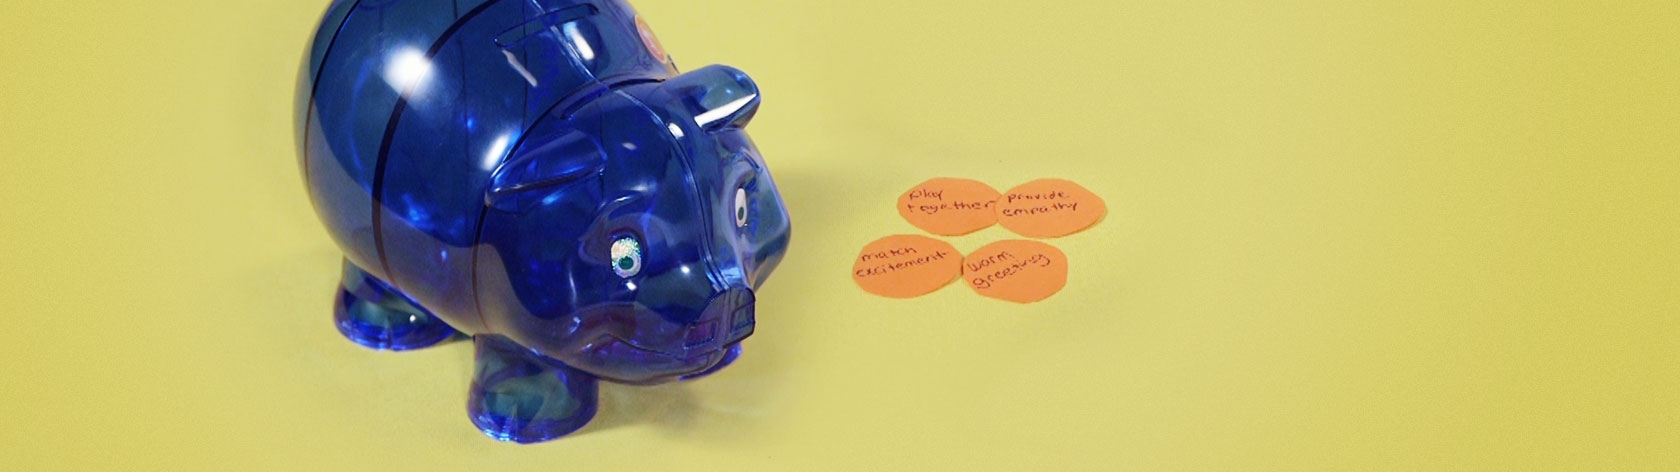 Blue plastic piggy bank from Circle Time Magazine show